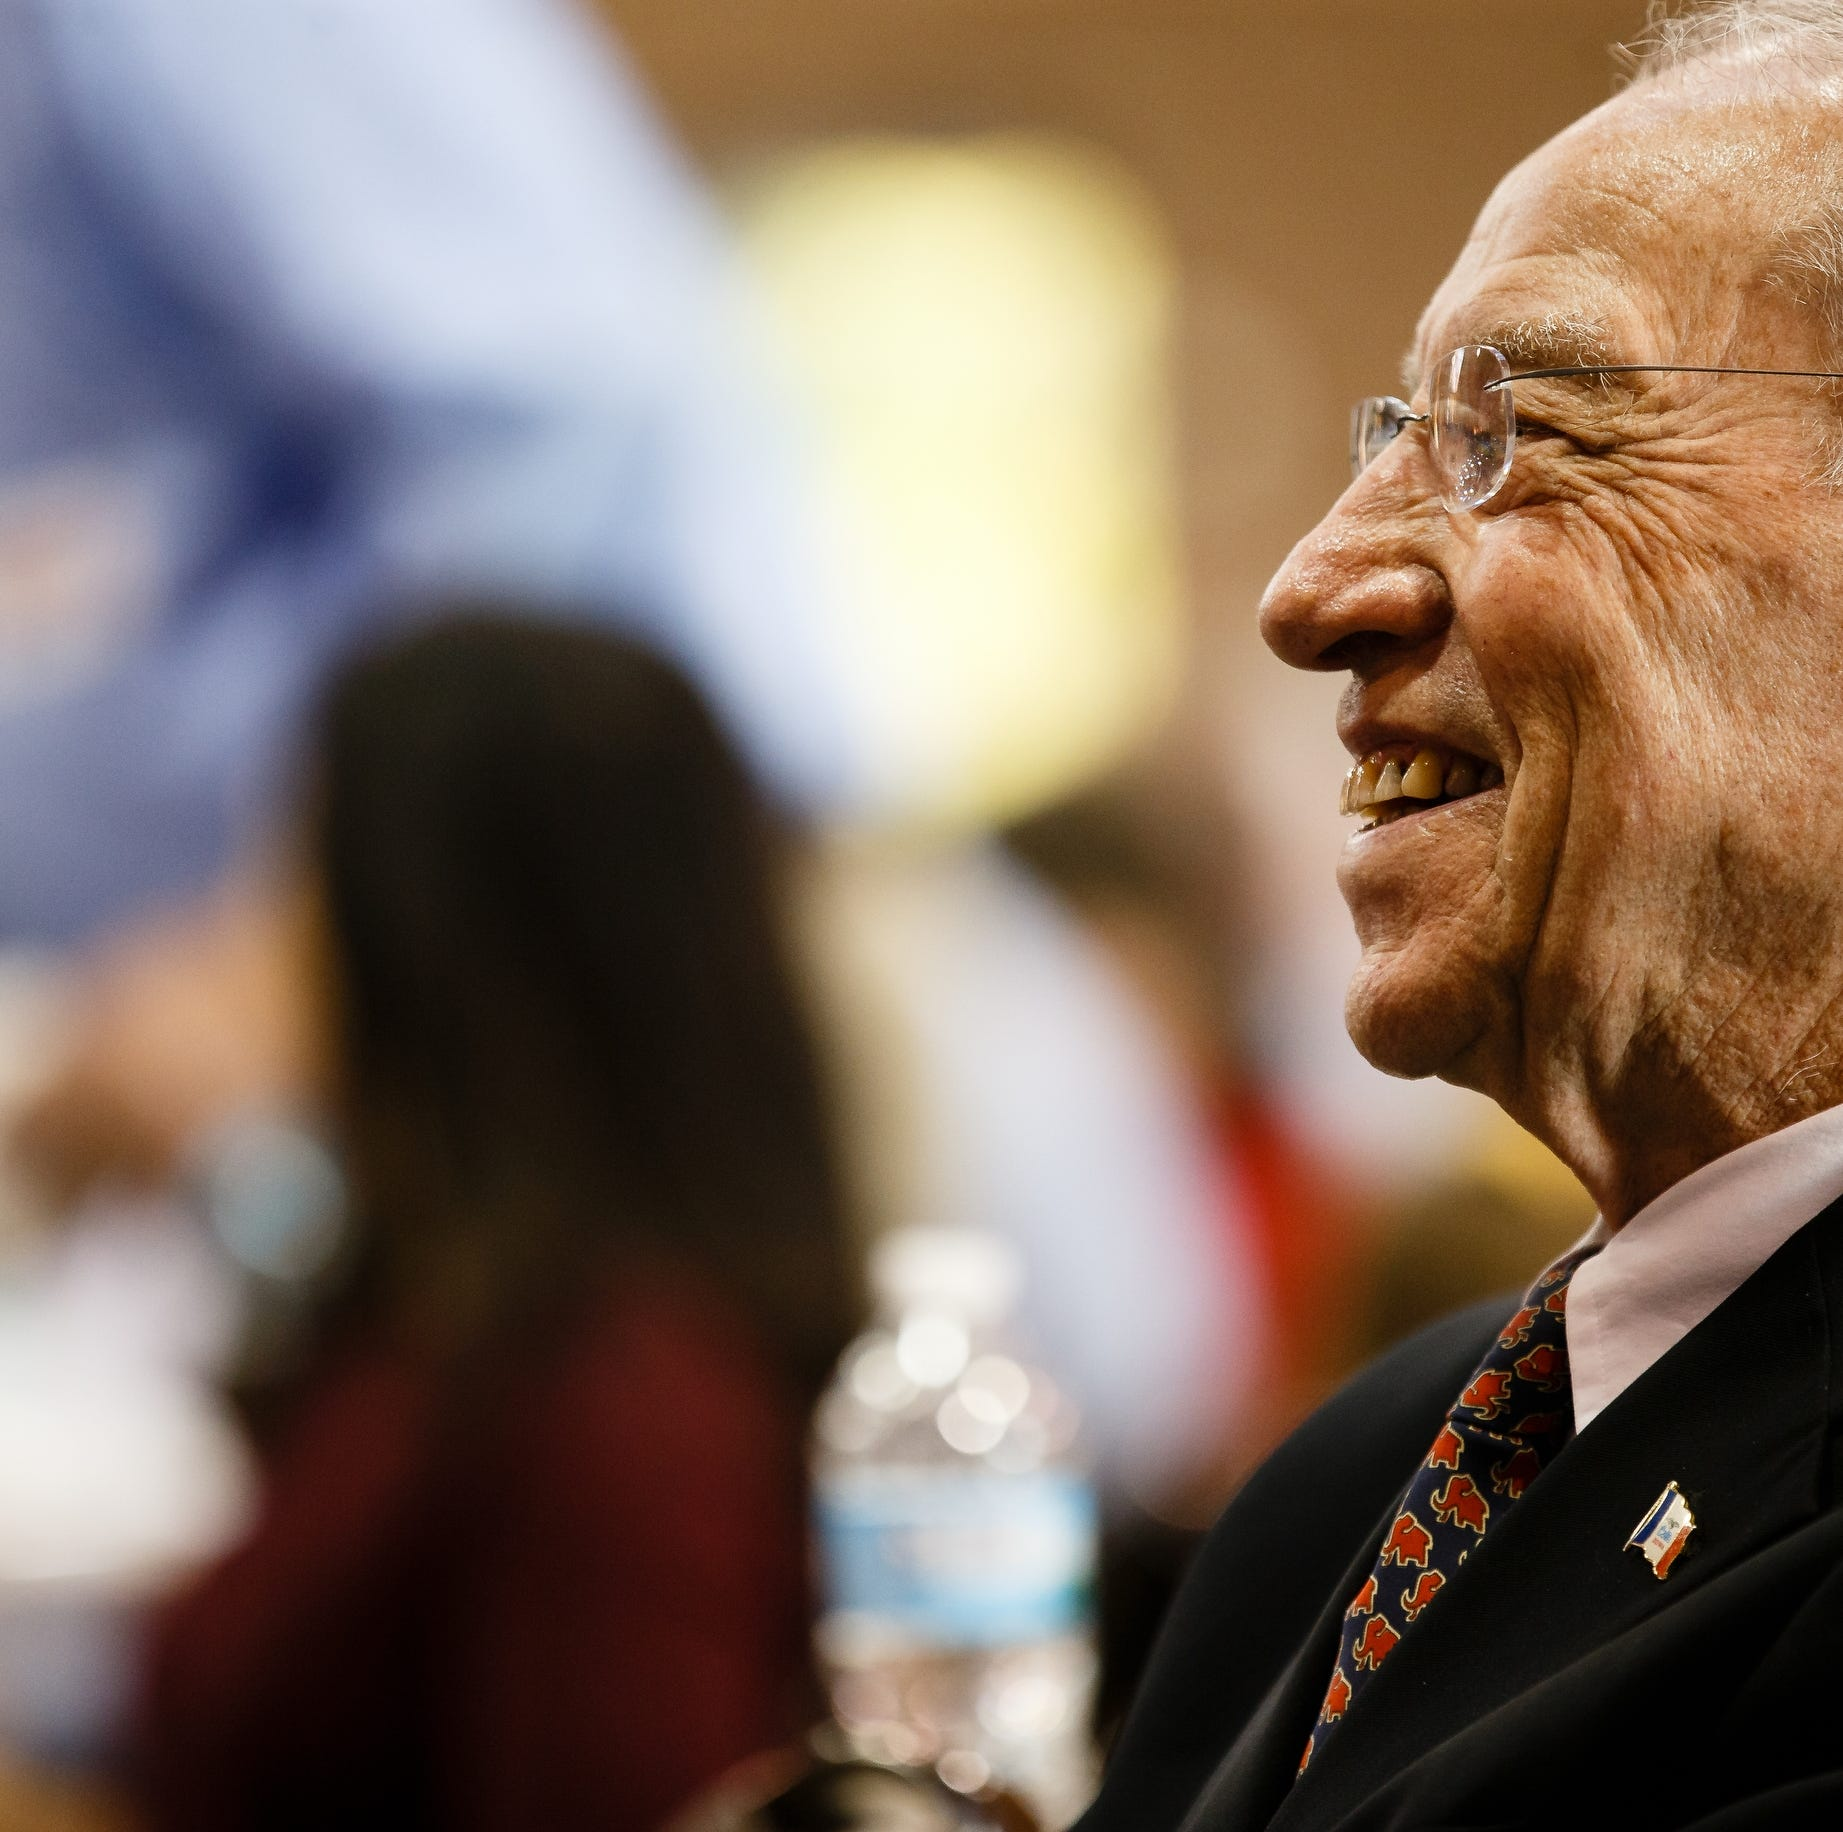 Sen. Chuck Grassley laughs as White House Spokesperson Sarah Sanders speaks during Gov. Reynolds Harvest Festival at the Knapp Animal Learning Center on Saturday, Oct. 13, 2018, in Des Moines.